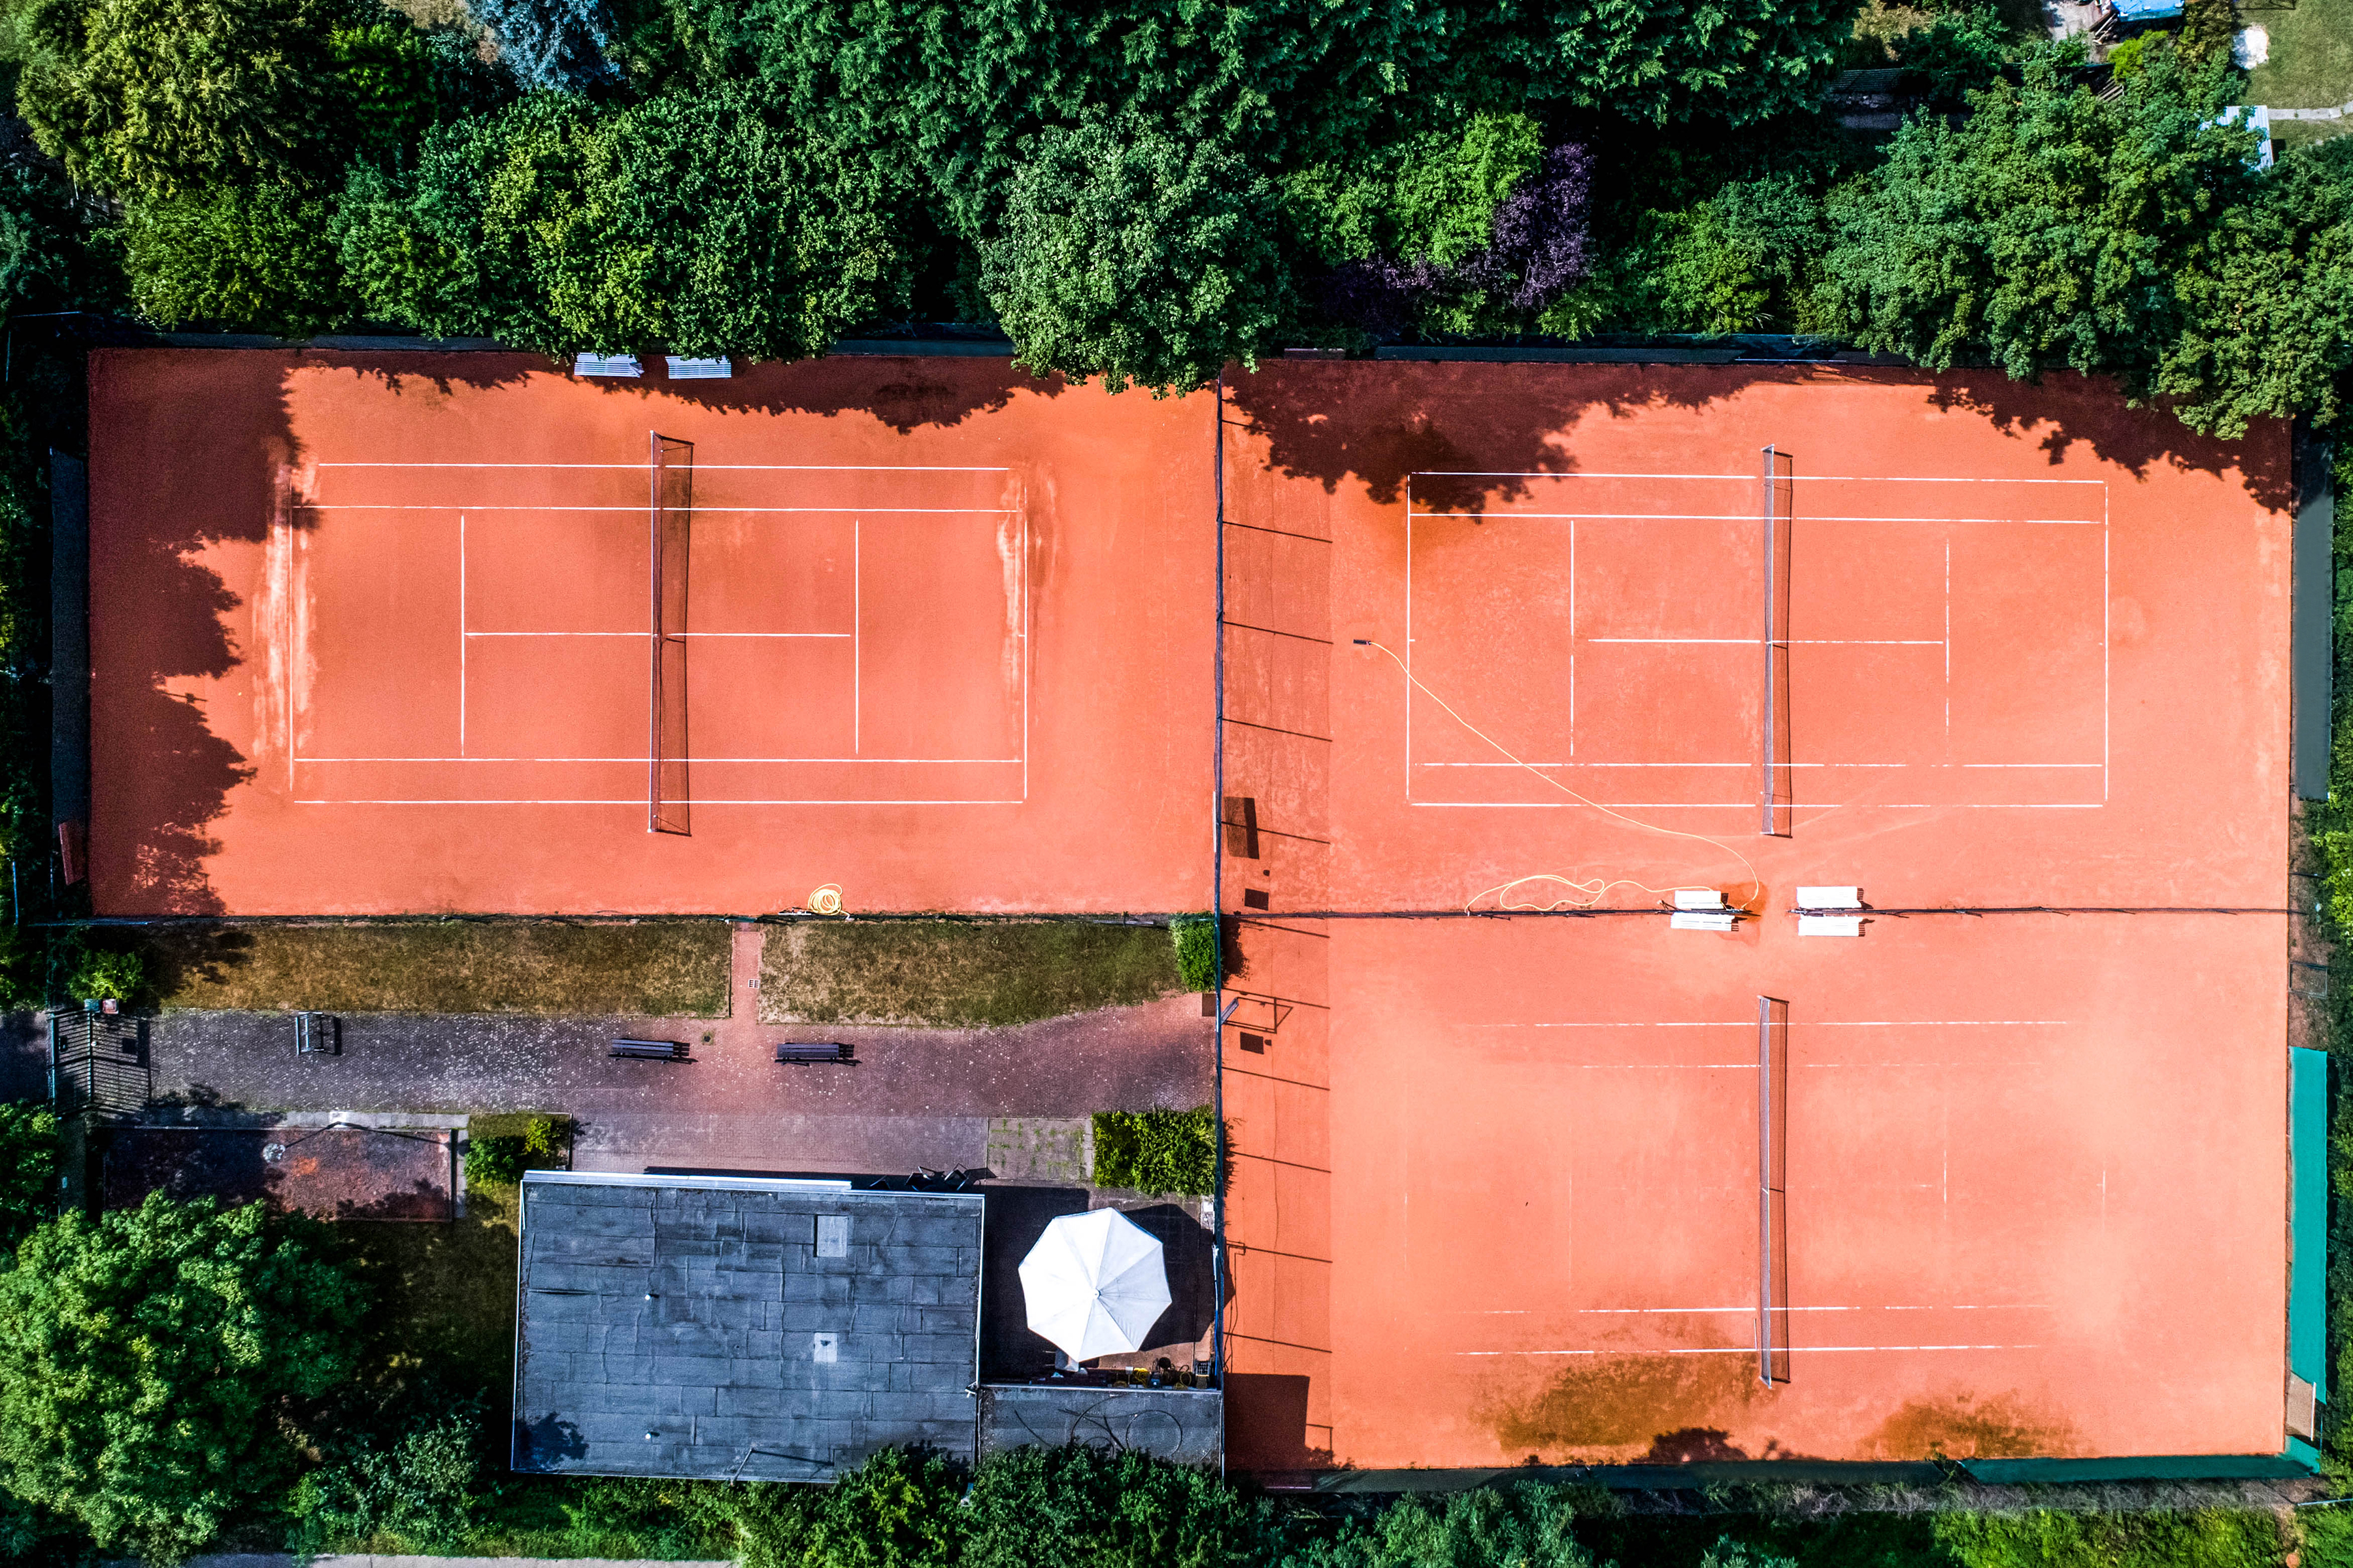 aerial view of a smal local Tennis courts for recreation and tennis training. Sporting area outdoors seen from above.